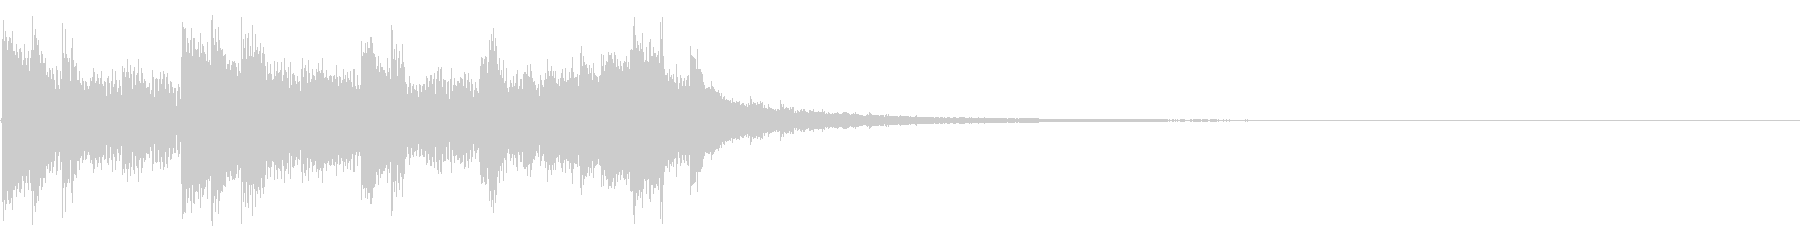 Product introduction, sophistication, high quality, calm:J's unreproduced waveform